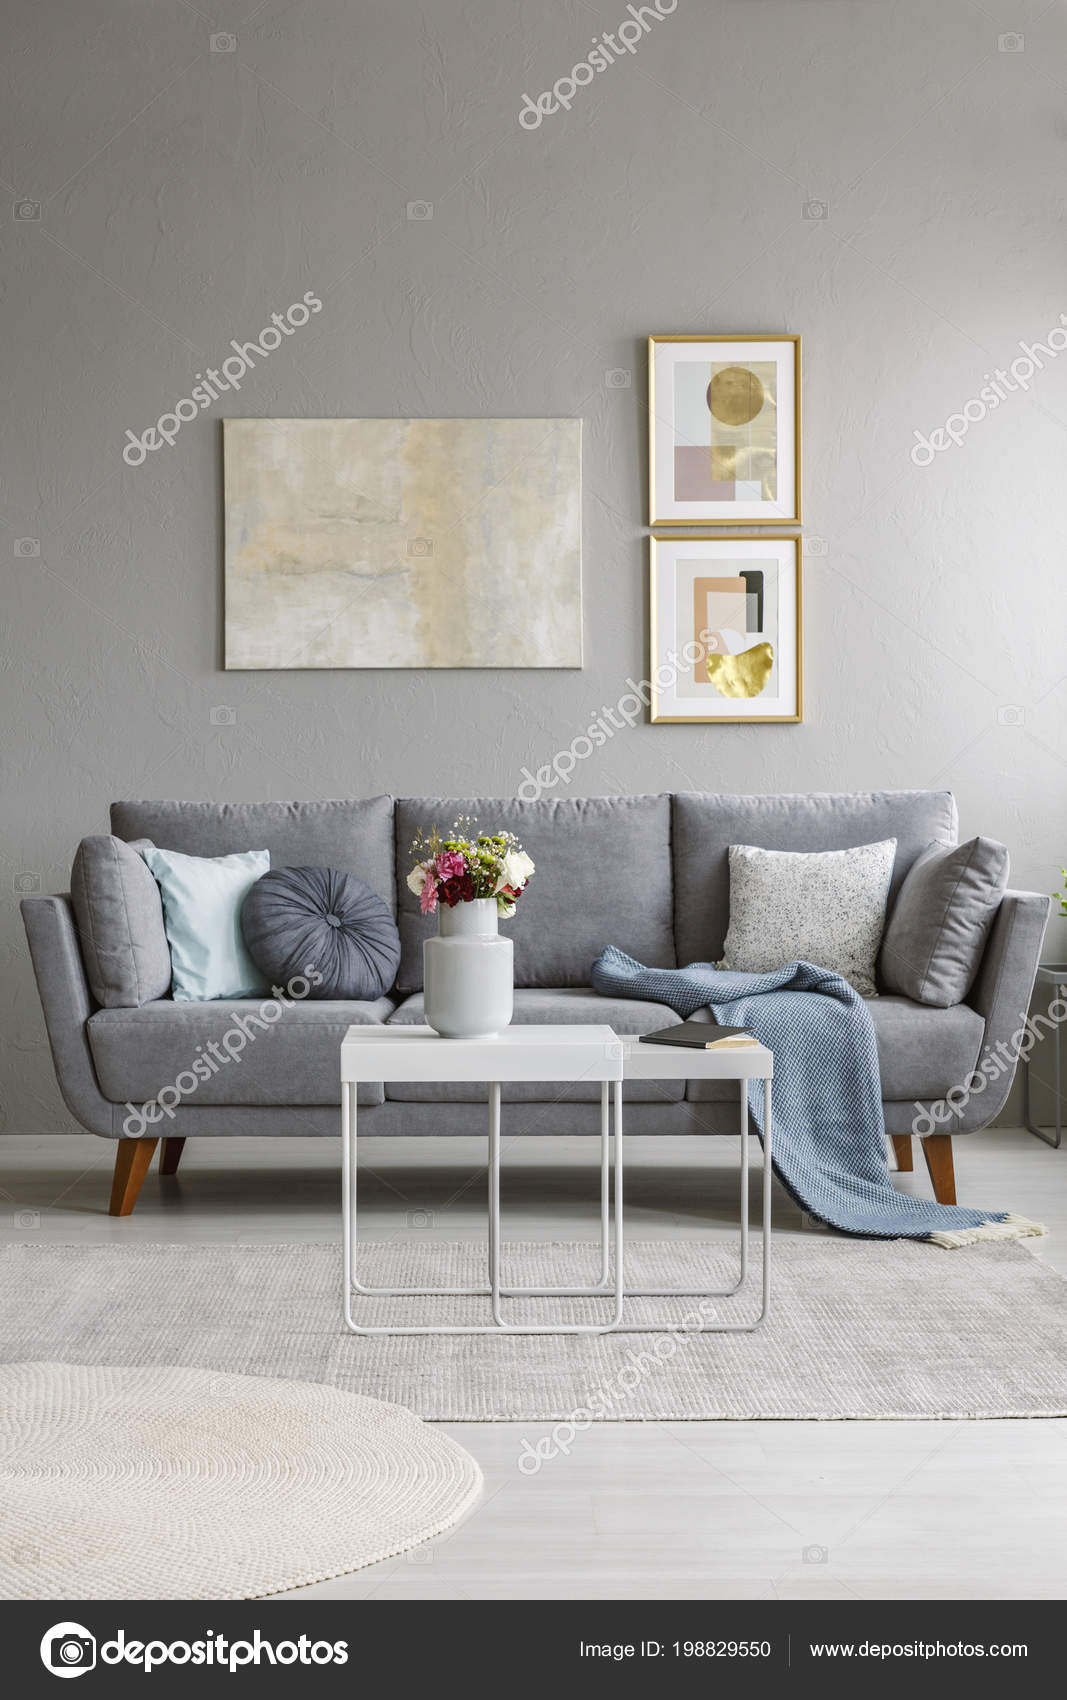 Real Photo Grey Couch Cushions Blanket Standing Living Room Interior —  Stock Photo 2fabc912f